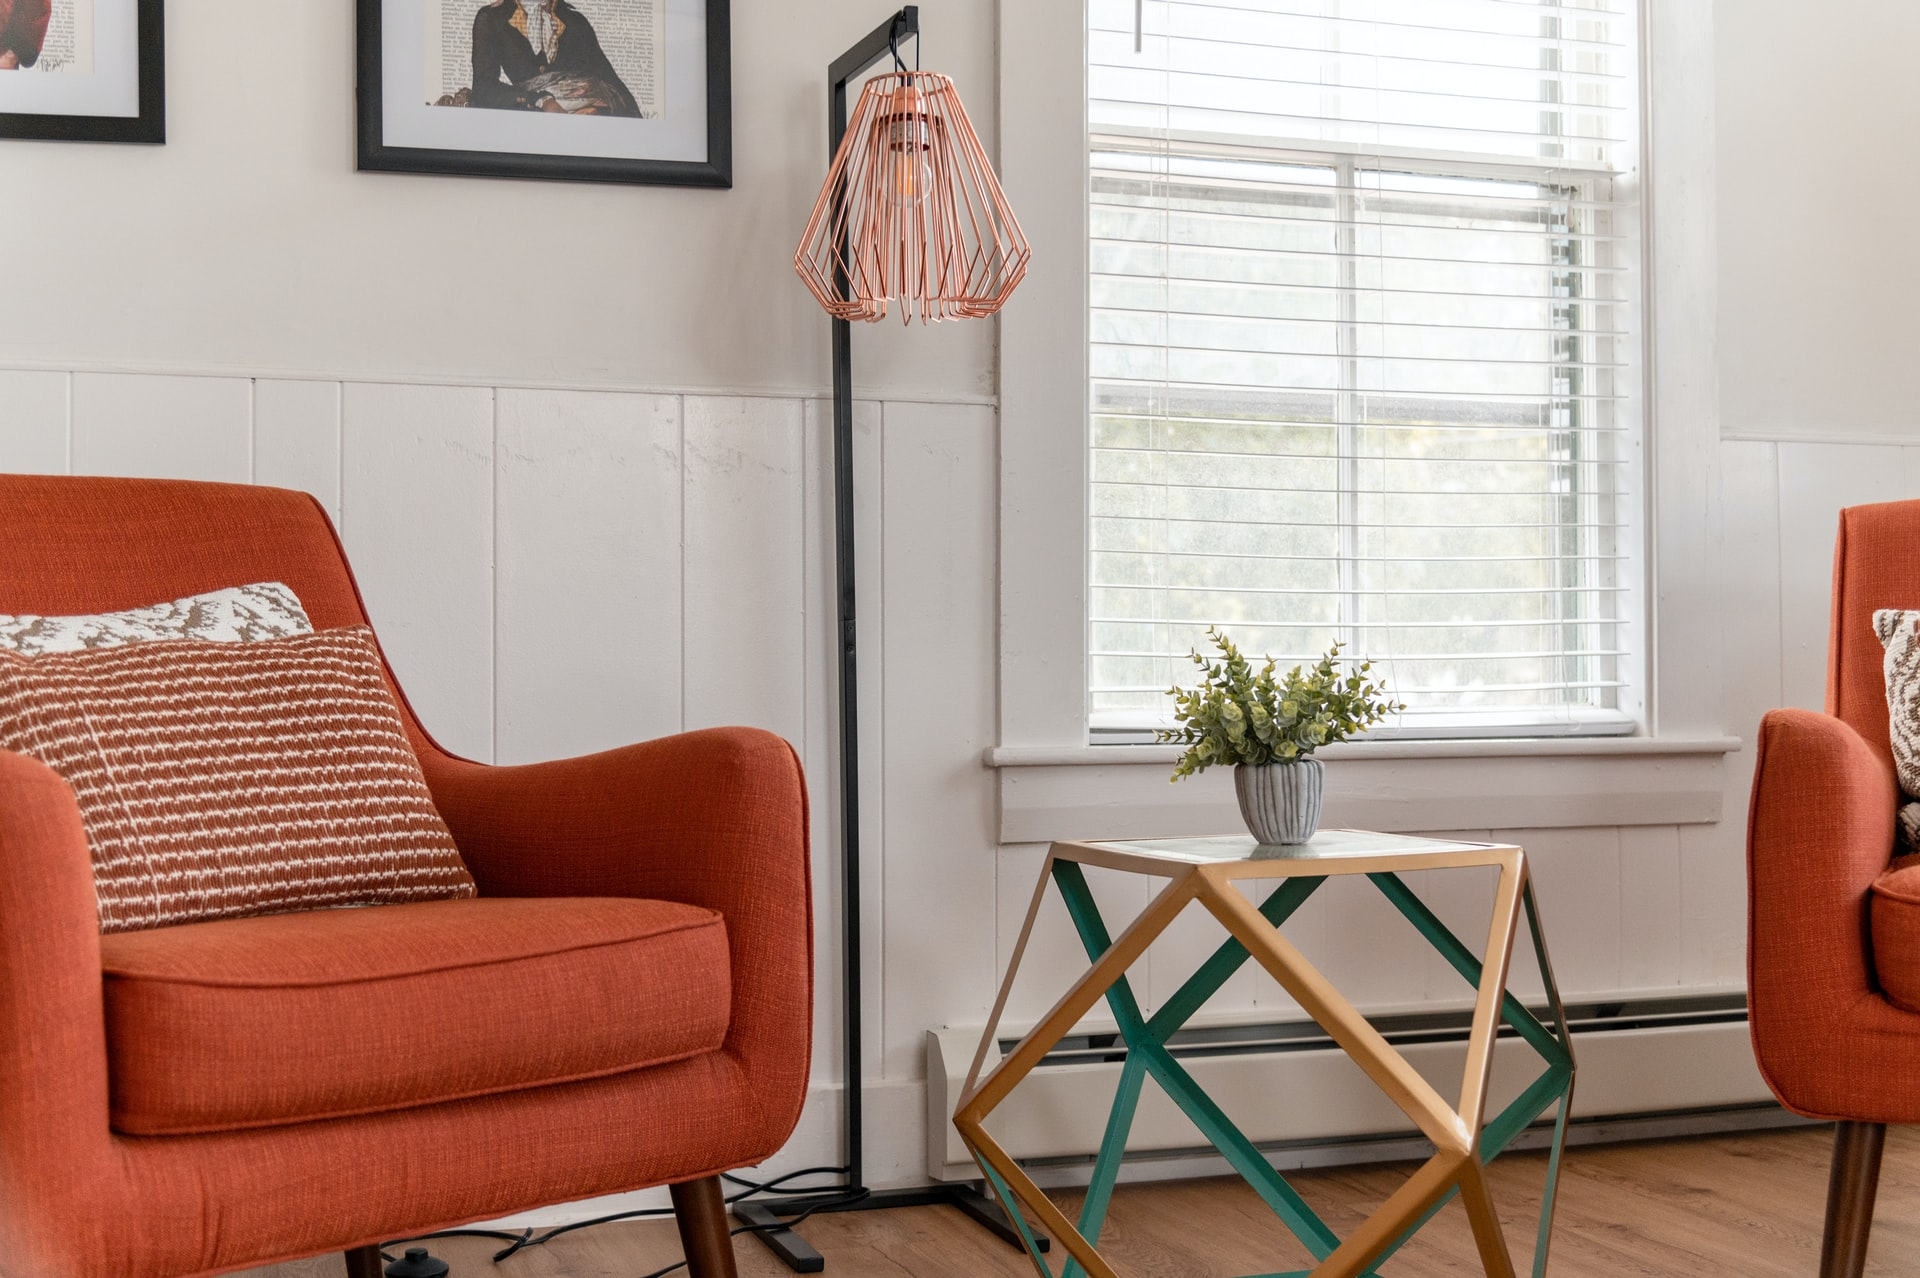 Colorful chair next to green table in a bright room